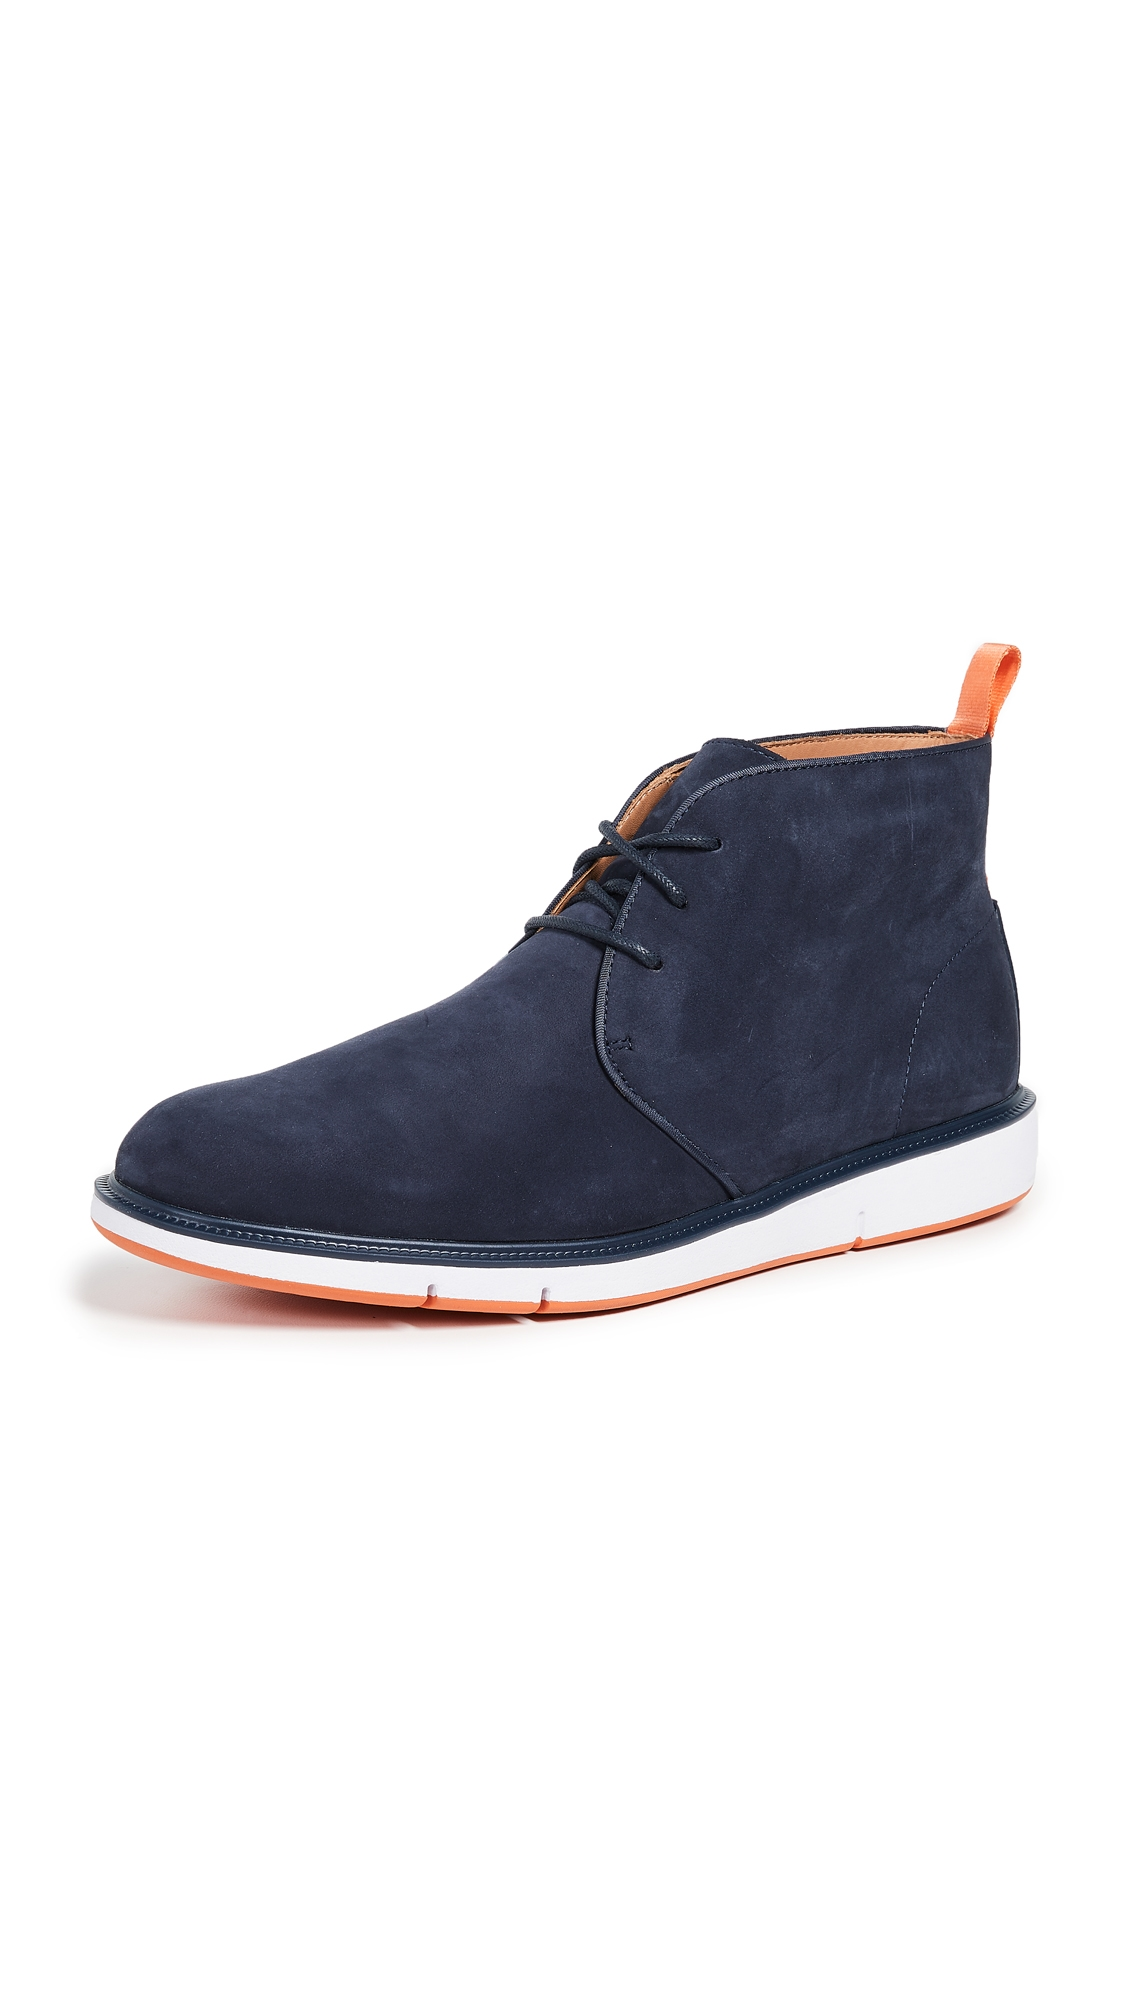 SWIMS Men'S Motion Suede Chukka Boots in Navy/Orange